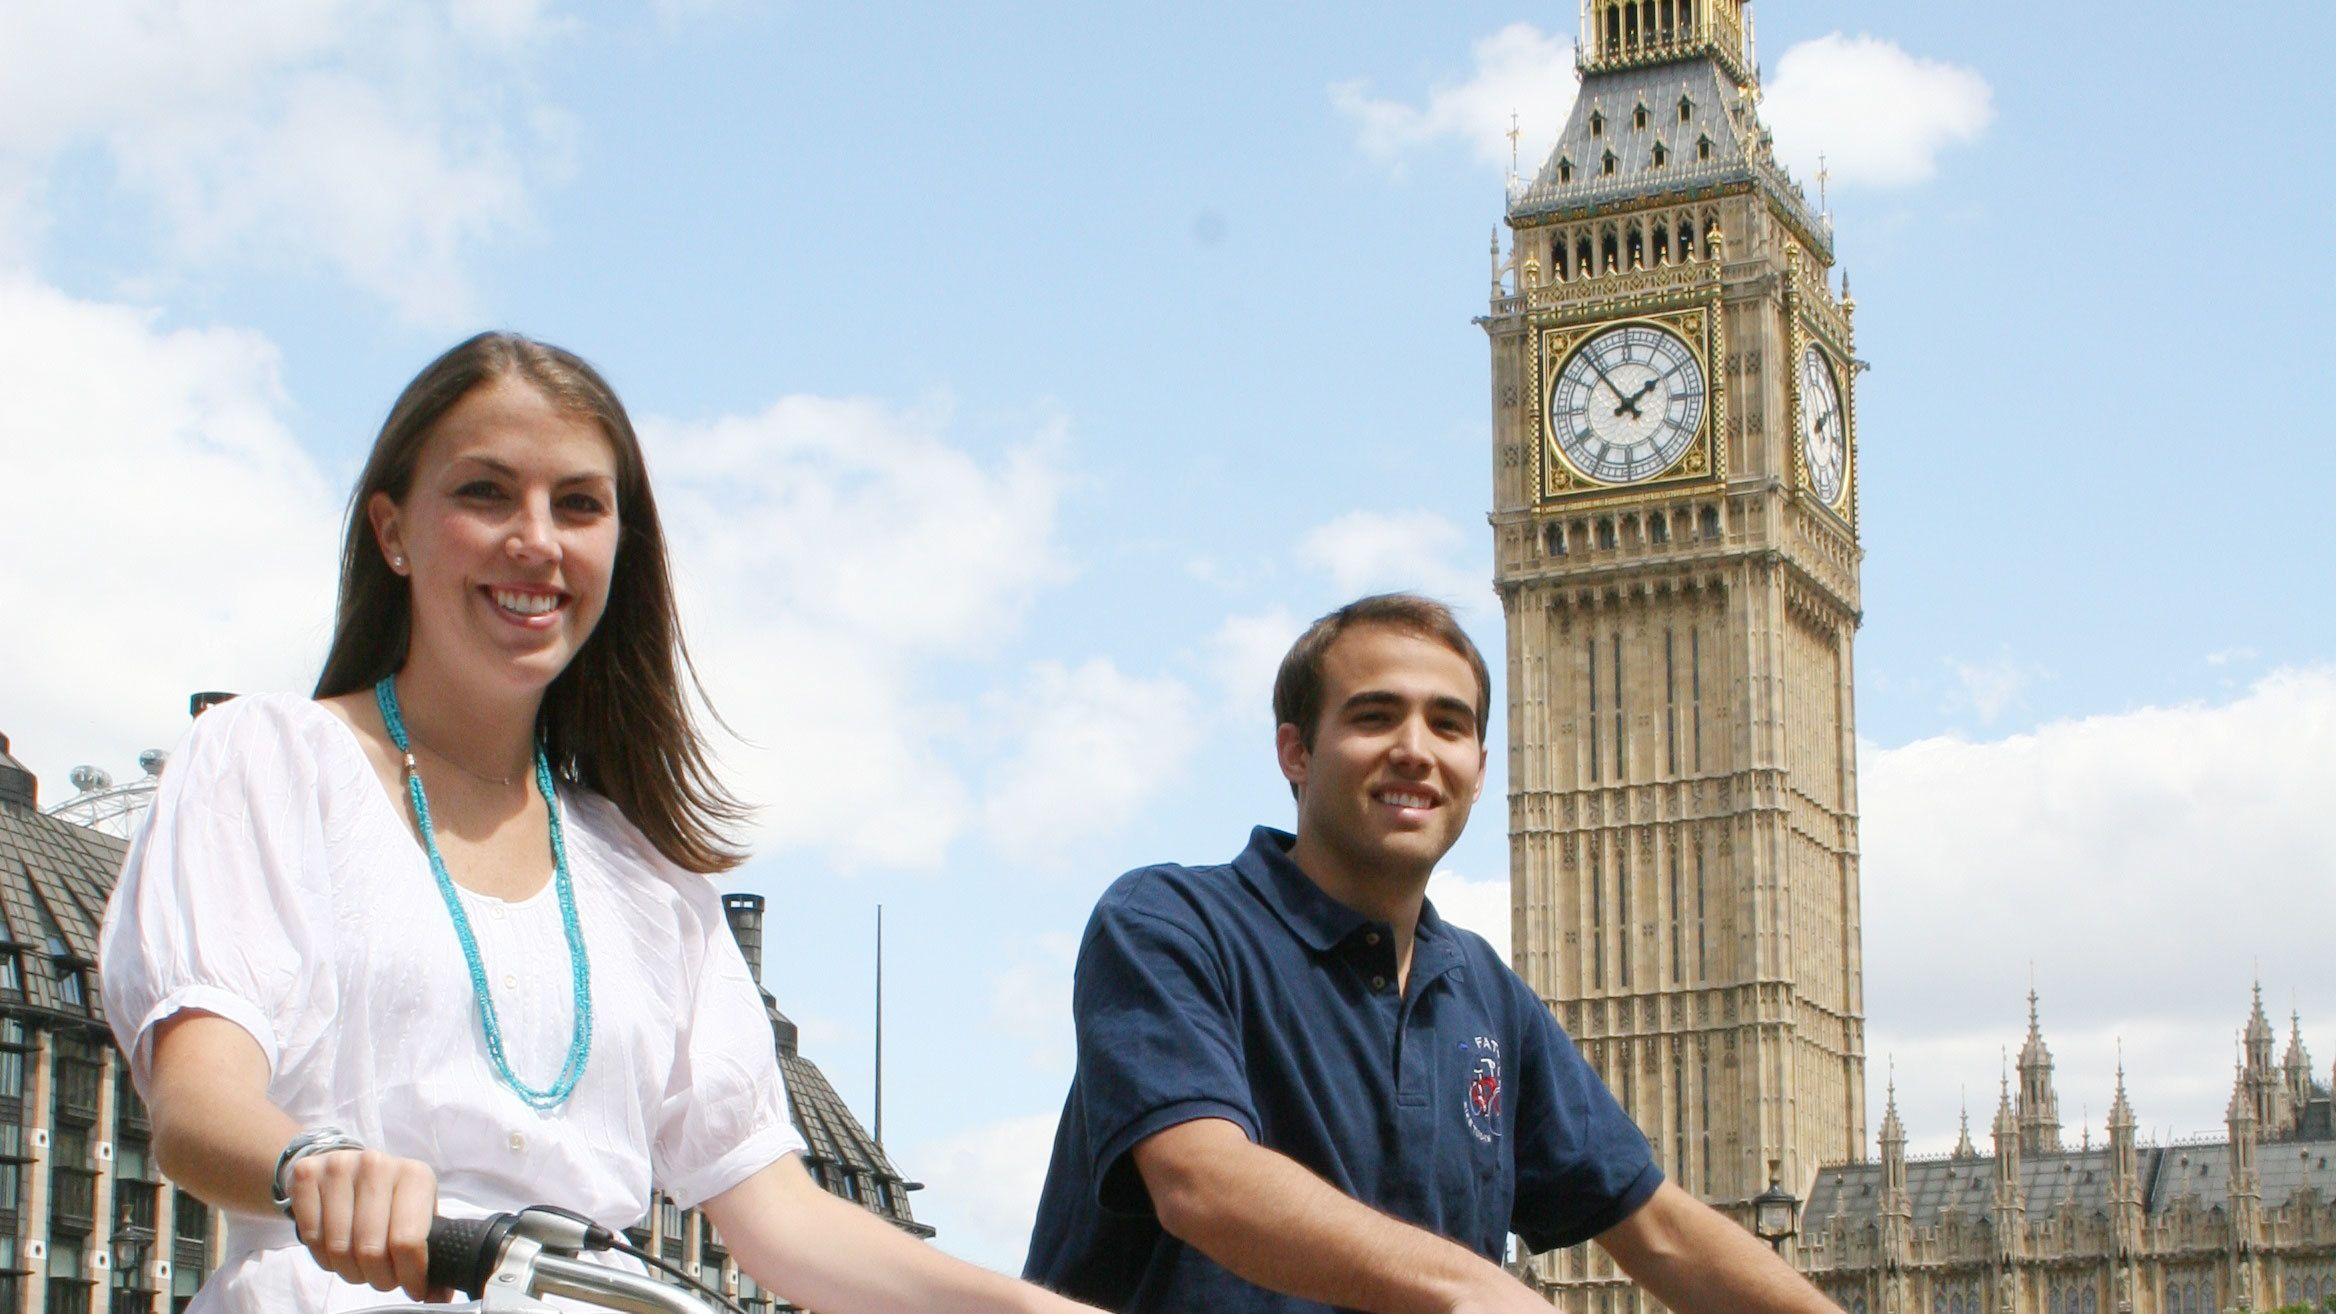 man and woman on bicycles next to Big Ben clock tower in London